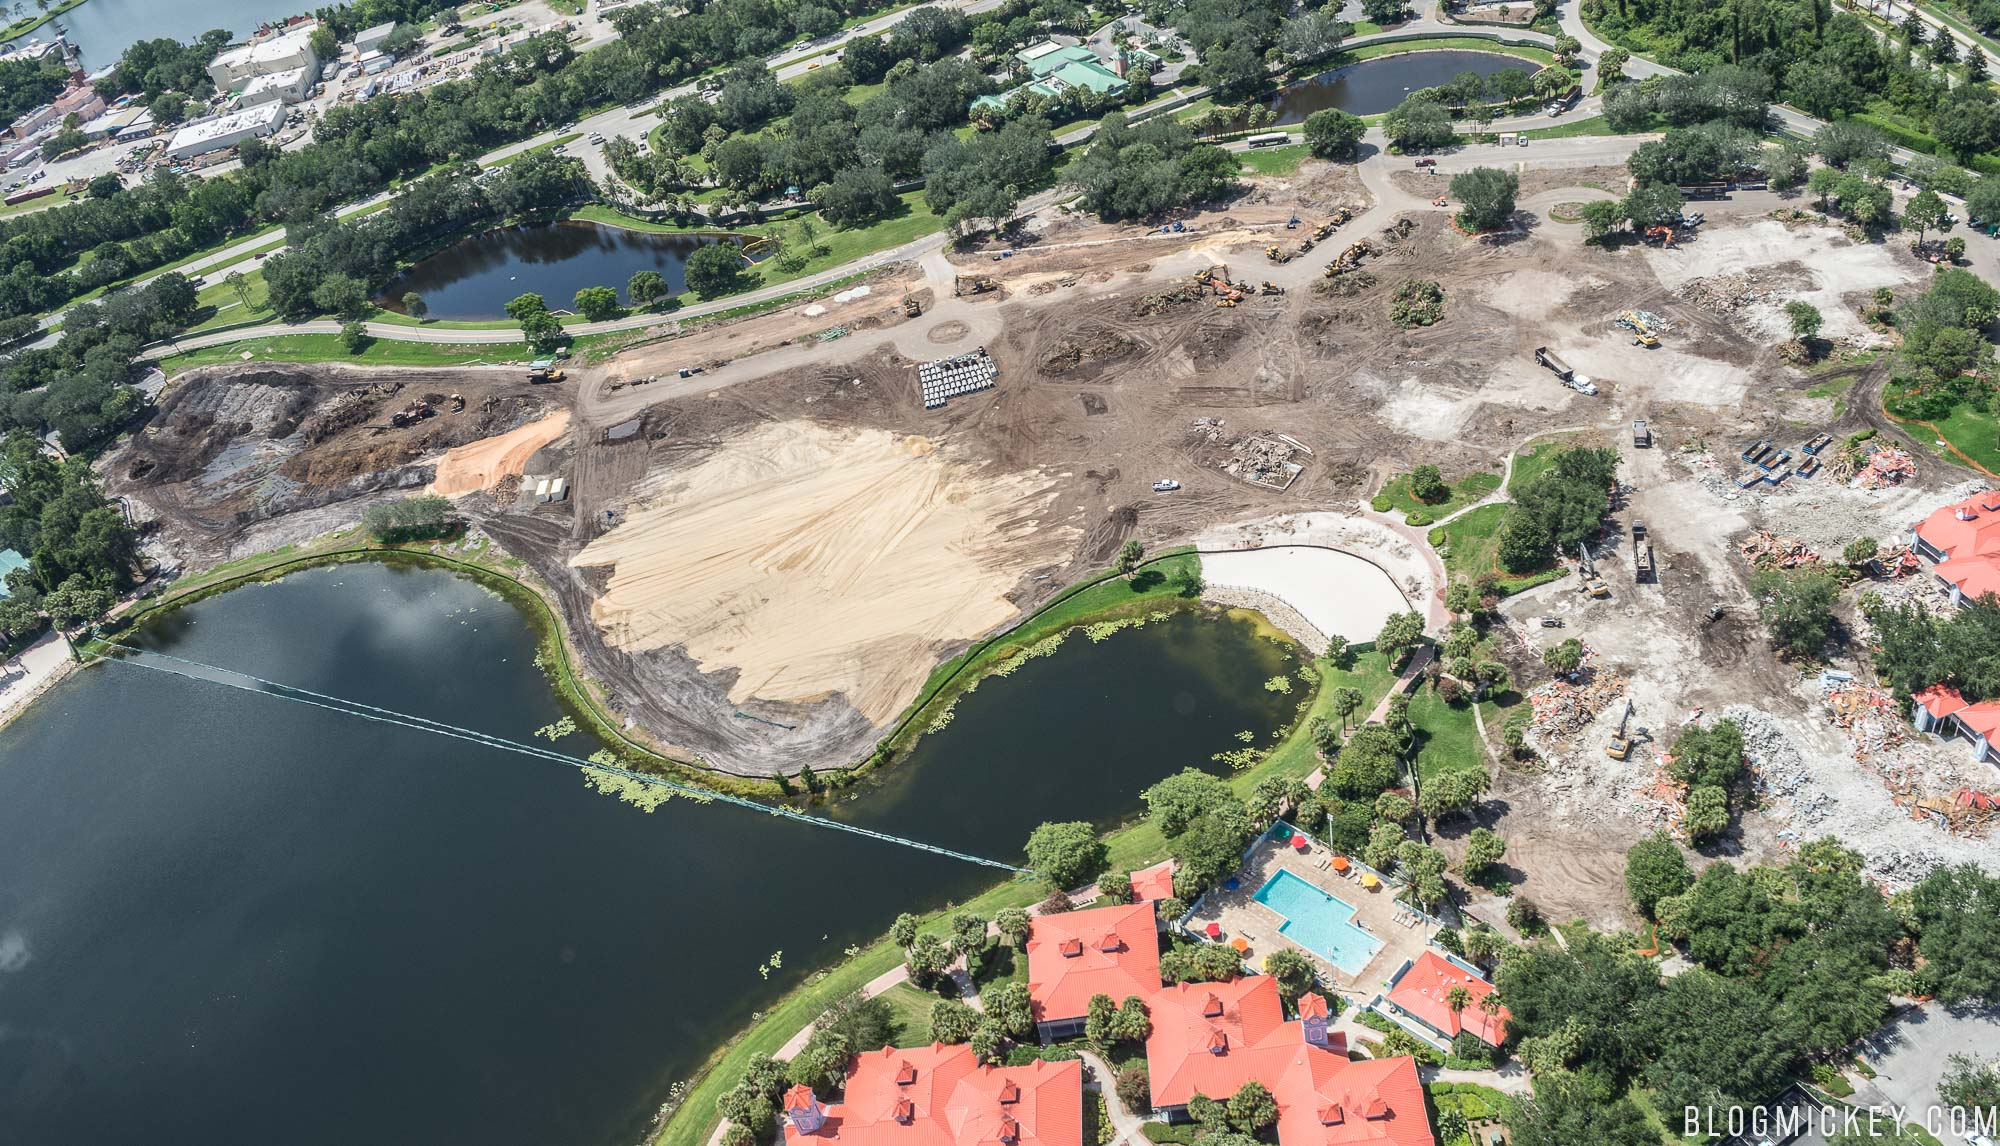 PHOTOS Disneys Caribbean Beach Resort Expansion Construction Update June 2017